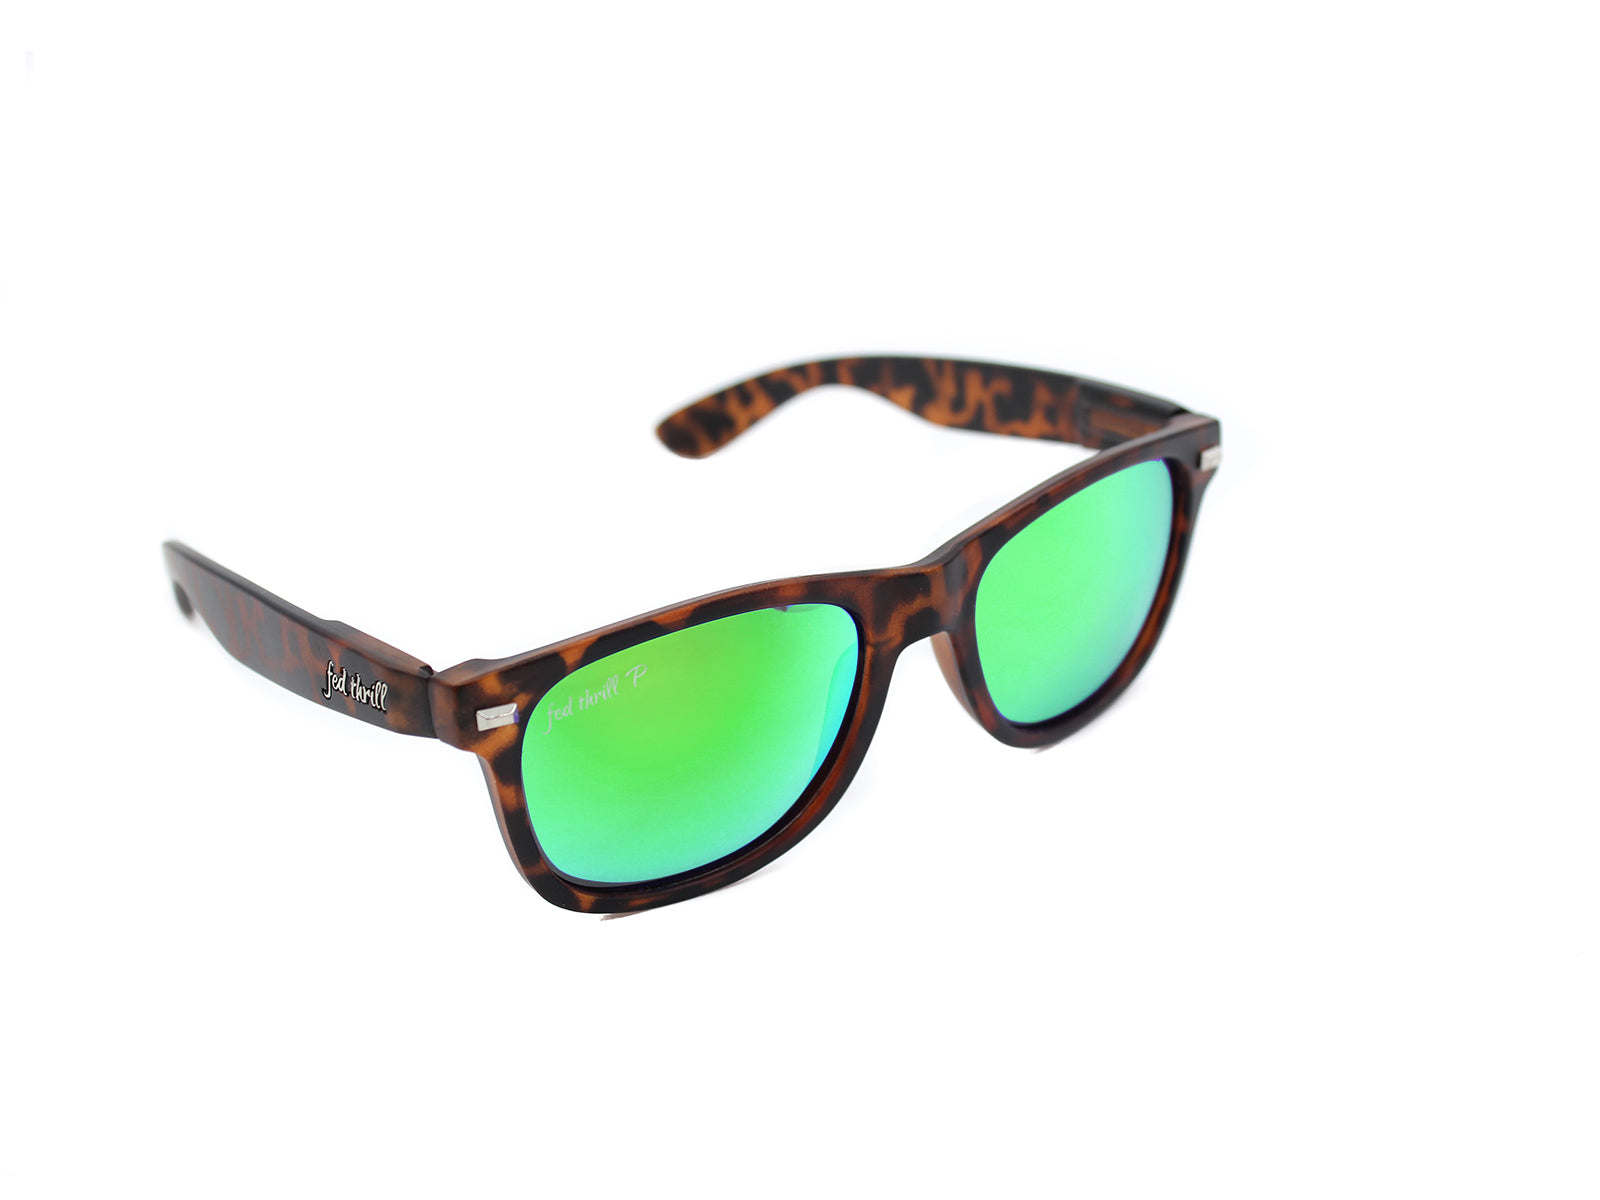 Fultons - Lakesides: Matte Tortoise / Mirrored Green Polarized